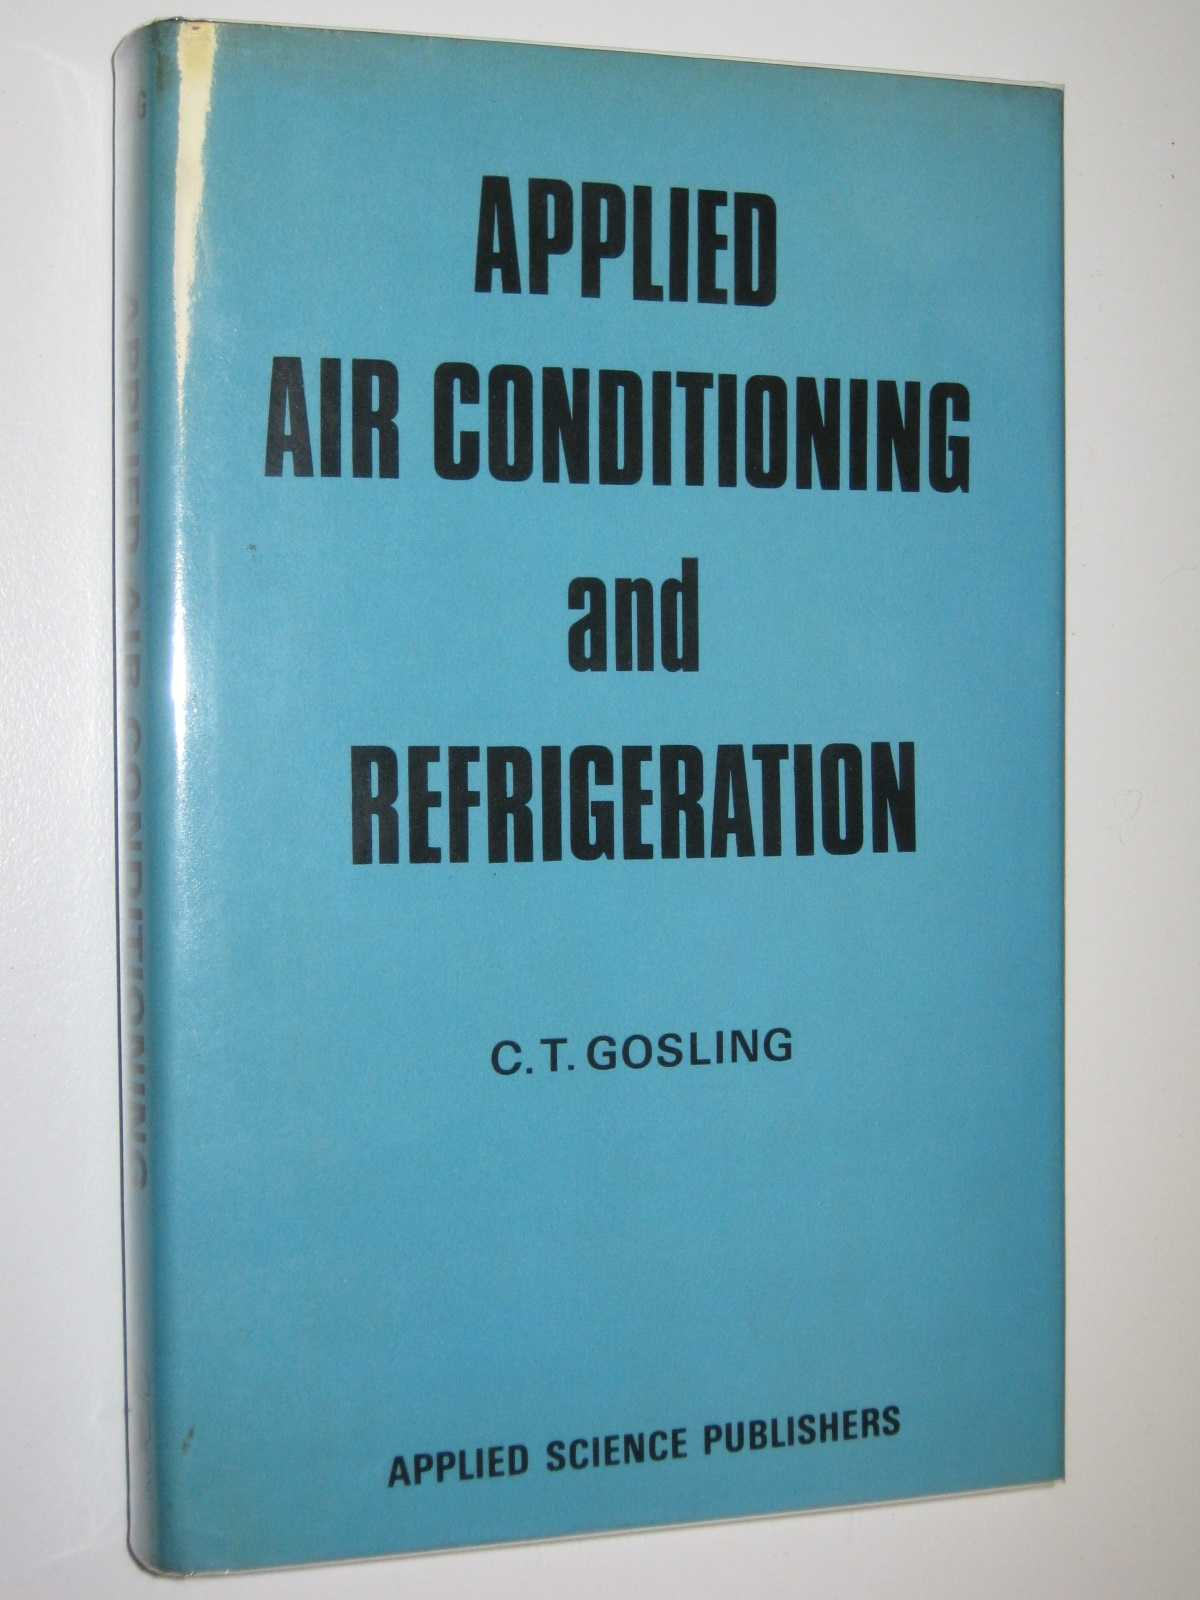 Applied Air Conditioning and Refrigeration, Gosling, C. T.